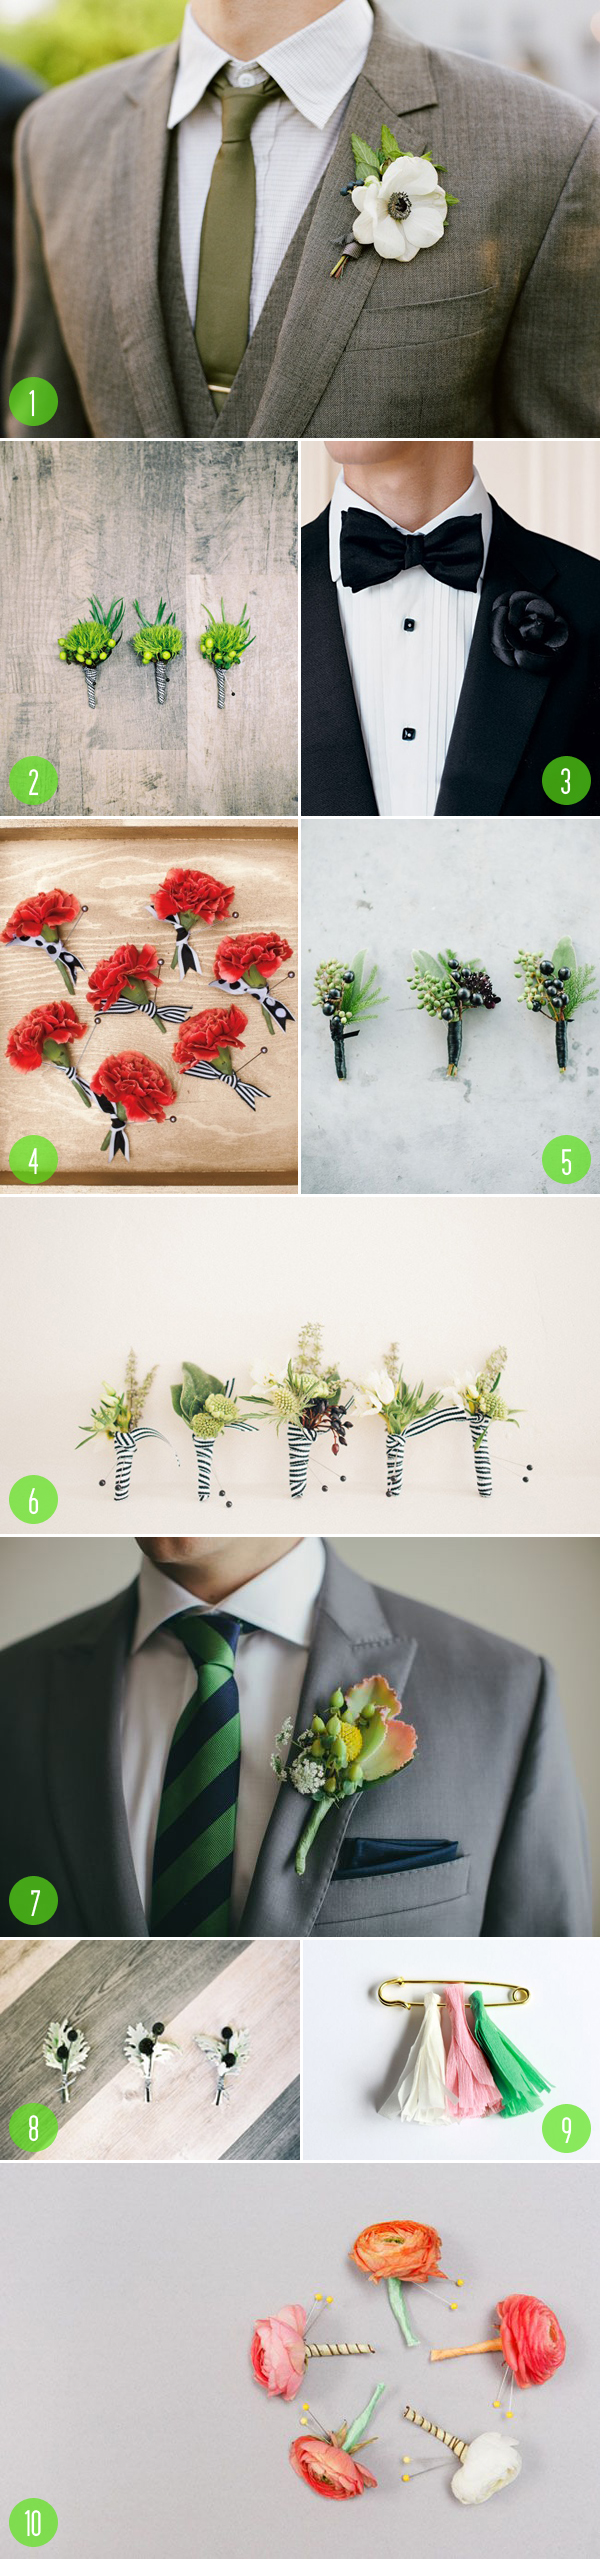 top 10: boutonnieres